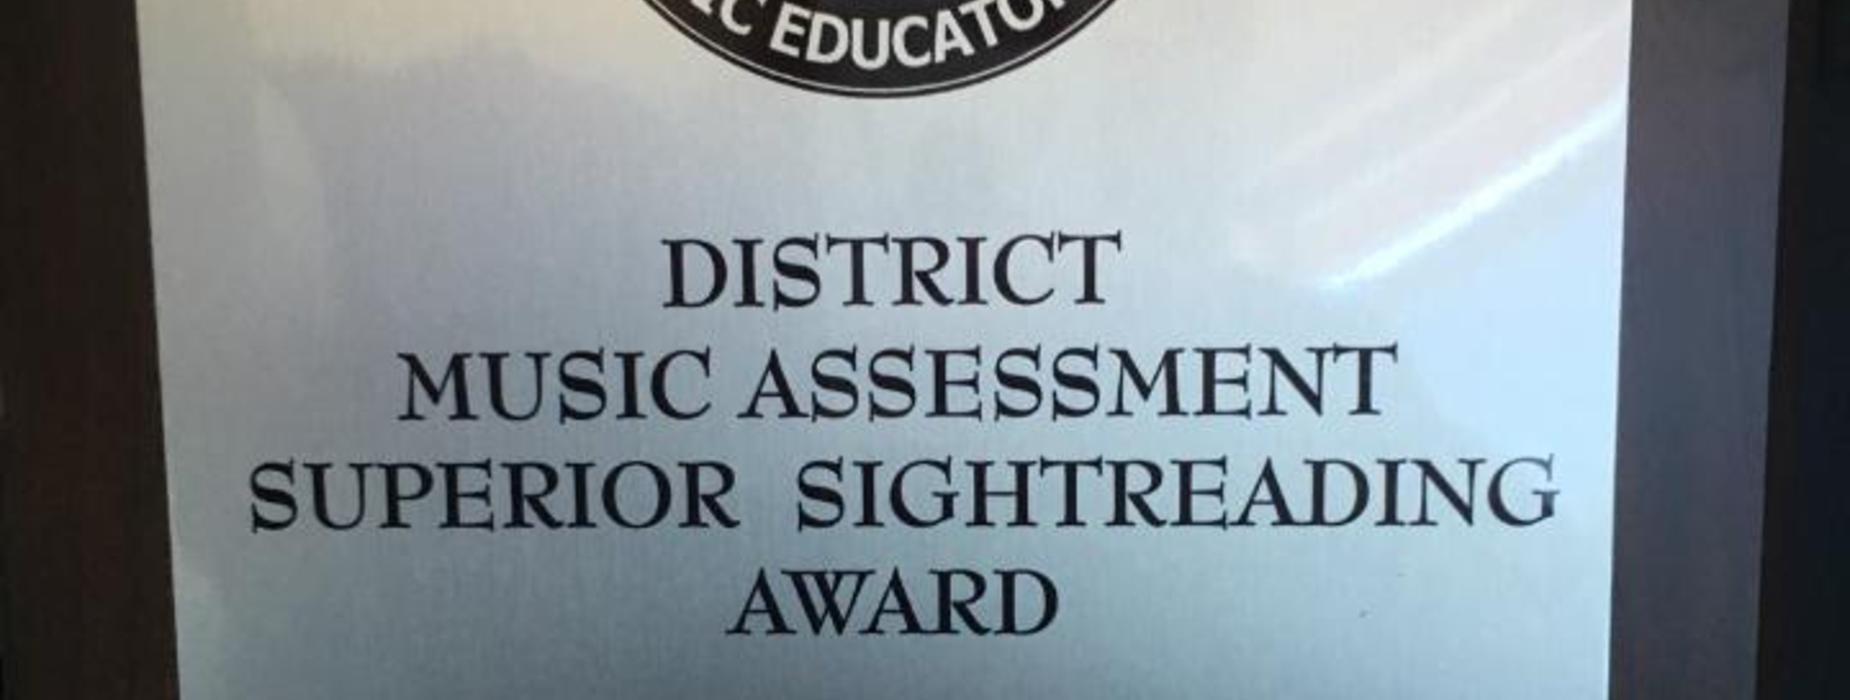 LES Band place in District Music Assessment Superior for sightreading